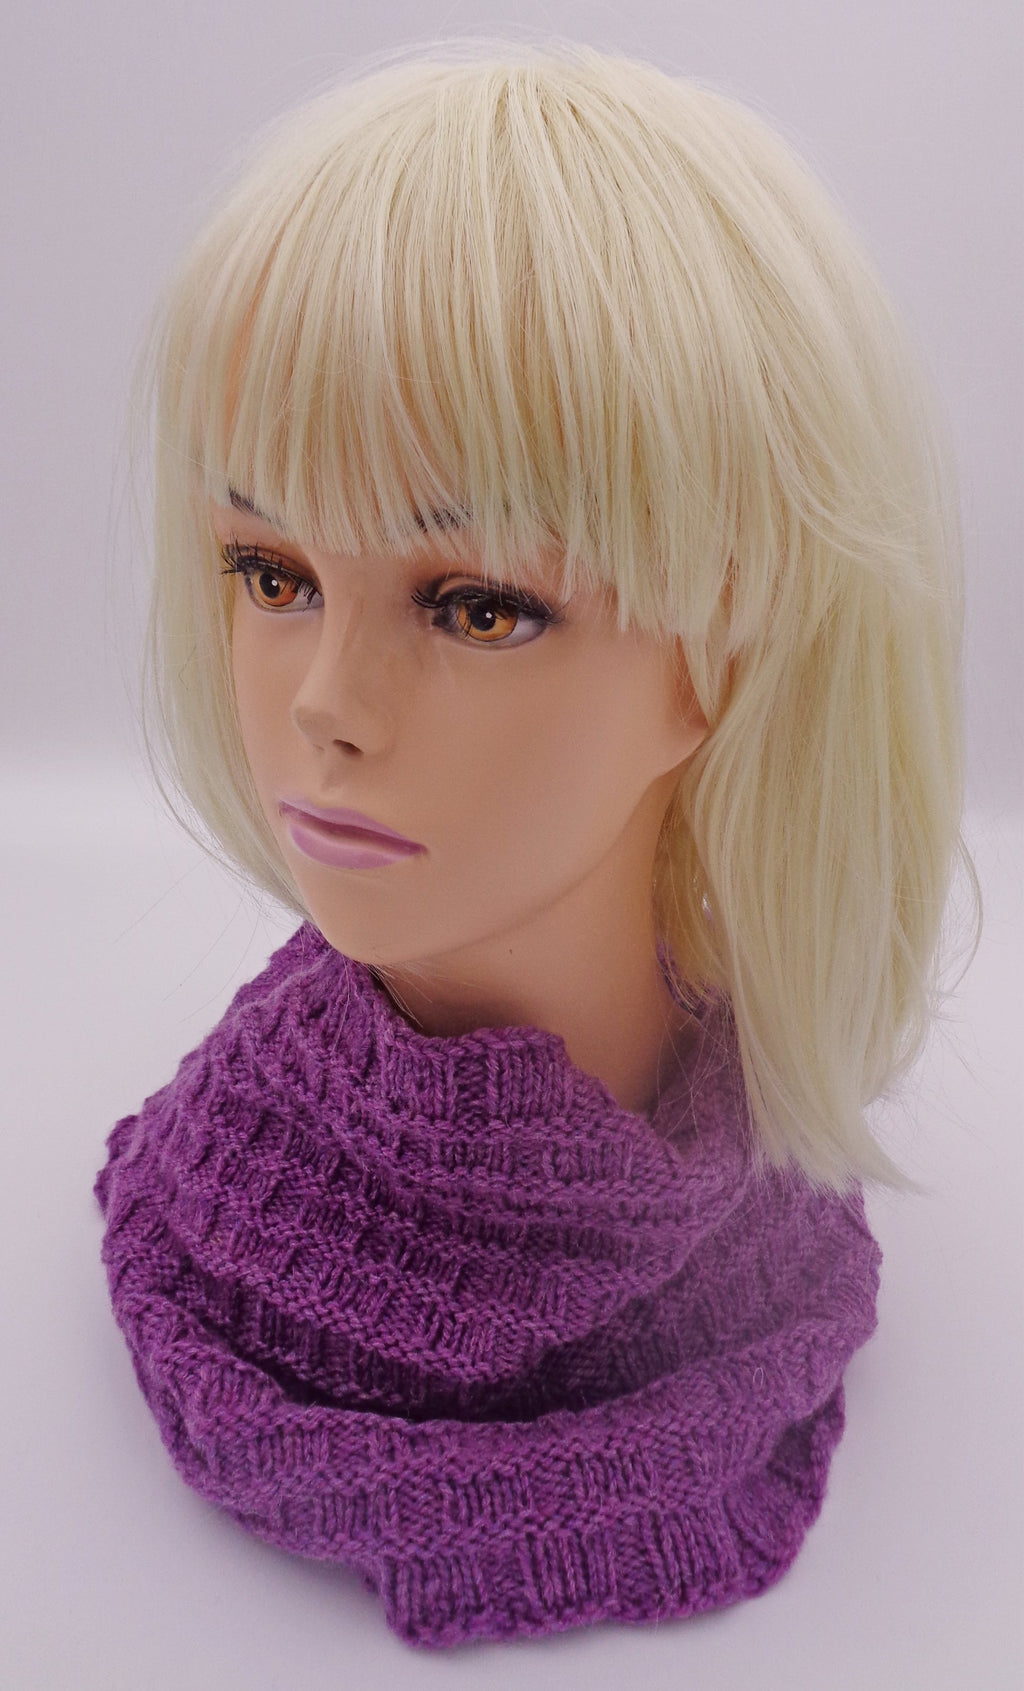 Basketweave Cowl - Designed by Stephanie Boozer